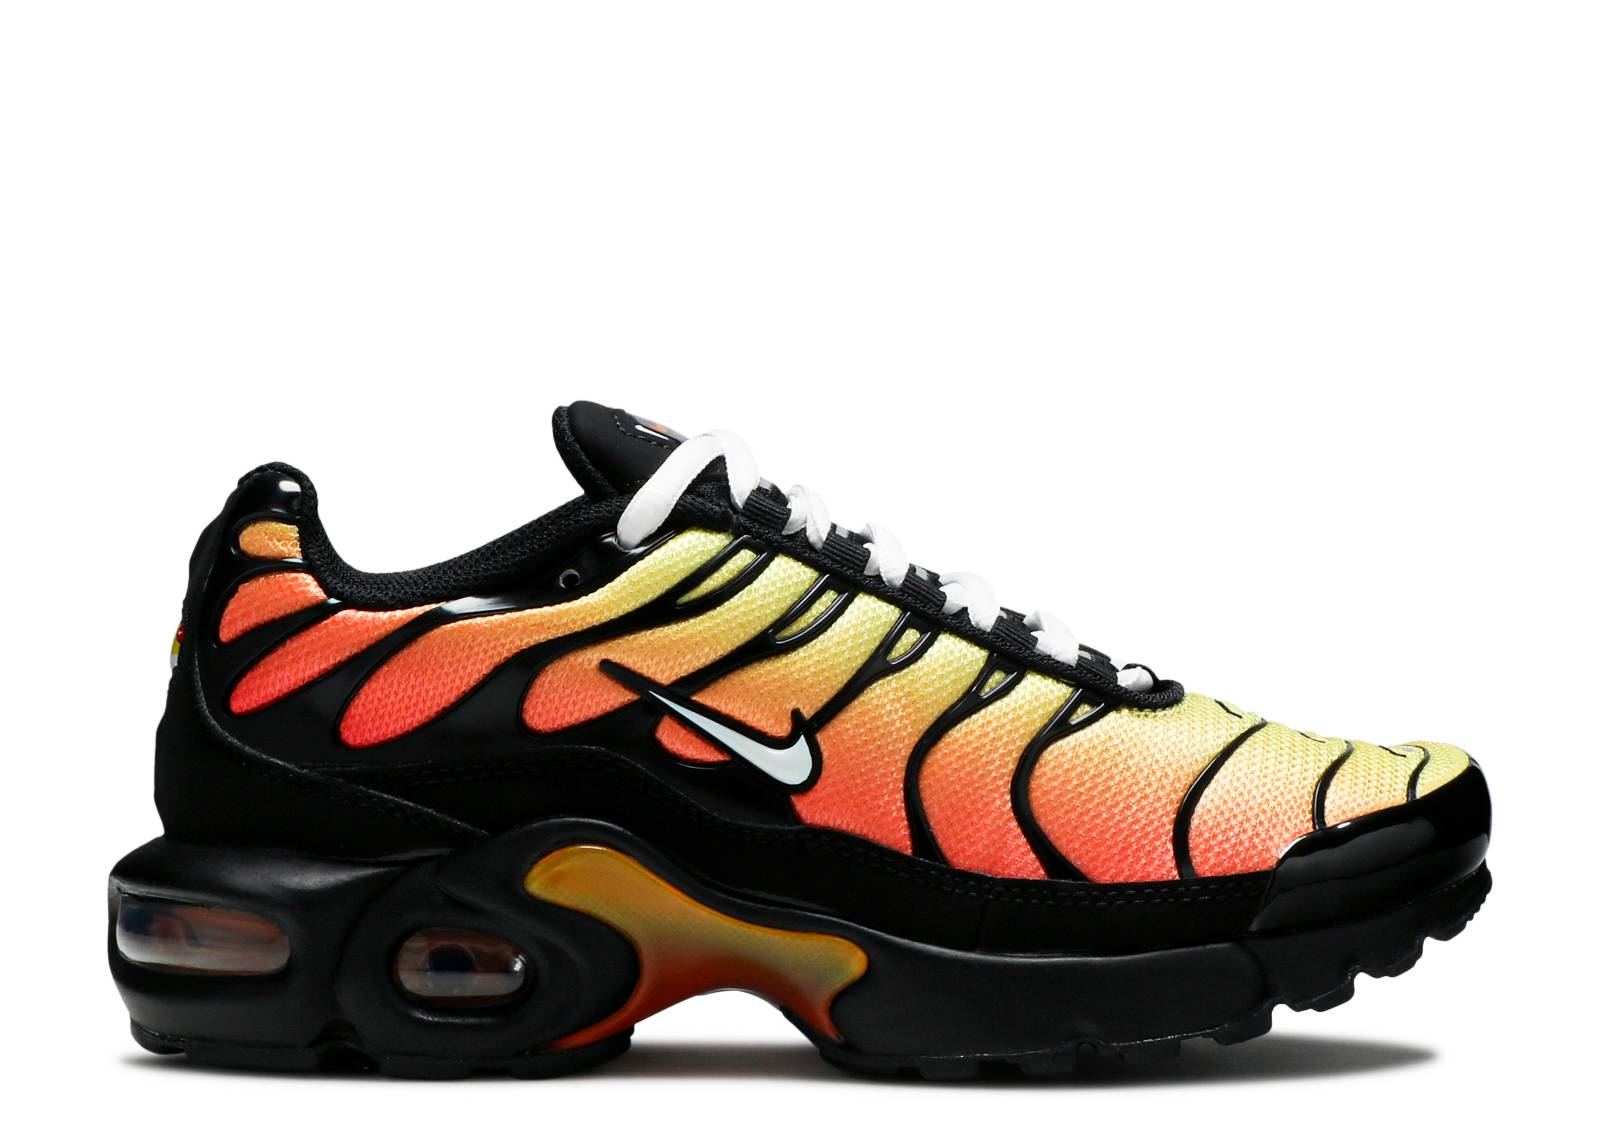 Air Max Plus Gs Black Habanero Red Nike Ar1852 017 Black